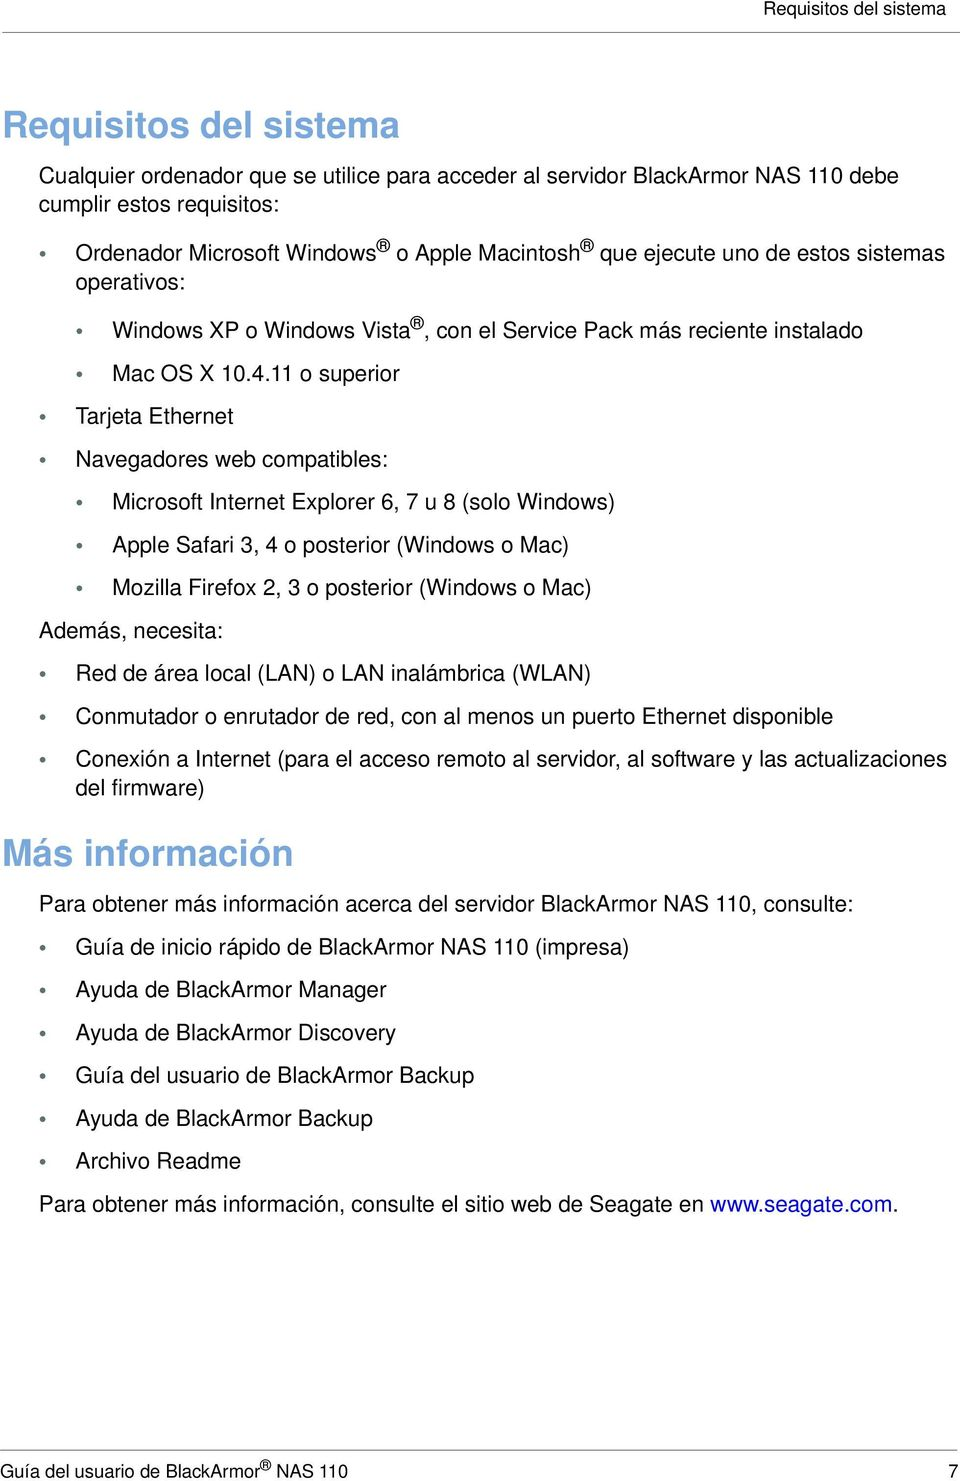 11 o superior Tarjeta Ethernet Navegadores web compatibles: Microsoft Internet Explorer 6, 7 u 8 (solo Windows) Apple Safari 3, 4 o posterior (Windows o Mac) Mozilla Firefox 2, 3 o posterior (Windows